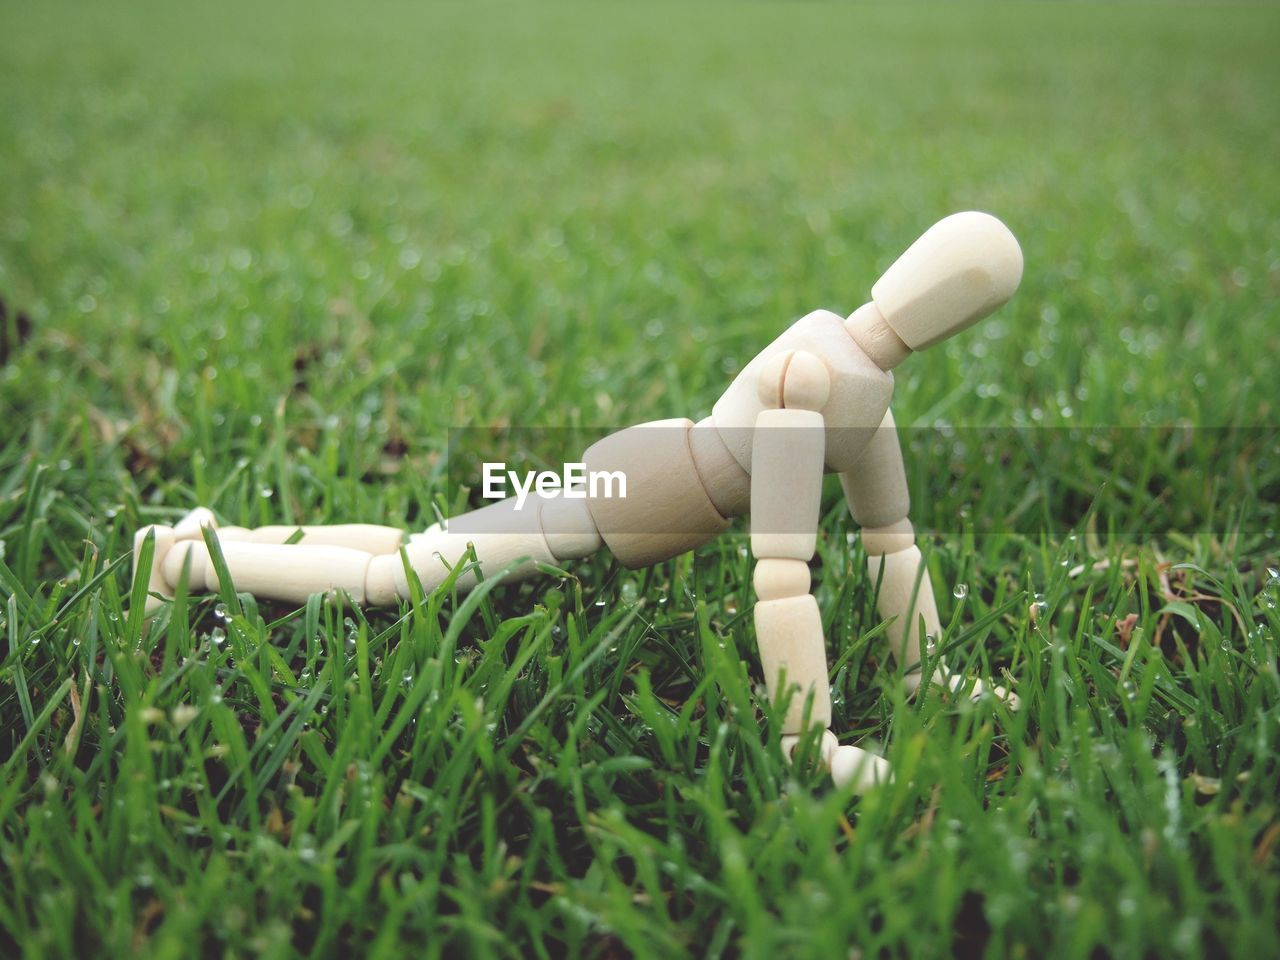 grass, plant, field, green color, nature, day, no people, human representation, land, white color, representation, close-up, figurine, wood - material, growth, selective focus, toy, outdoors, sport, focus on foreground